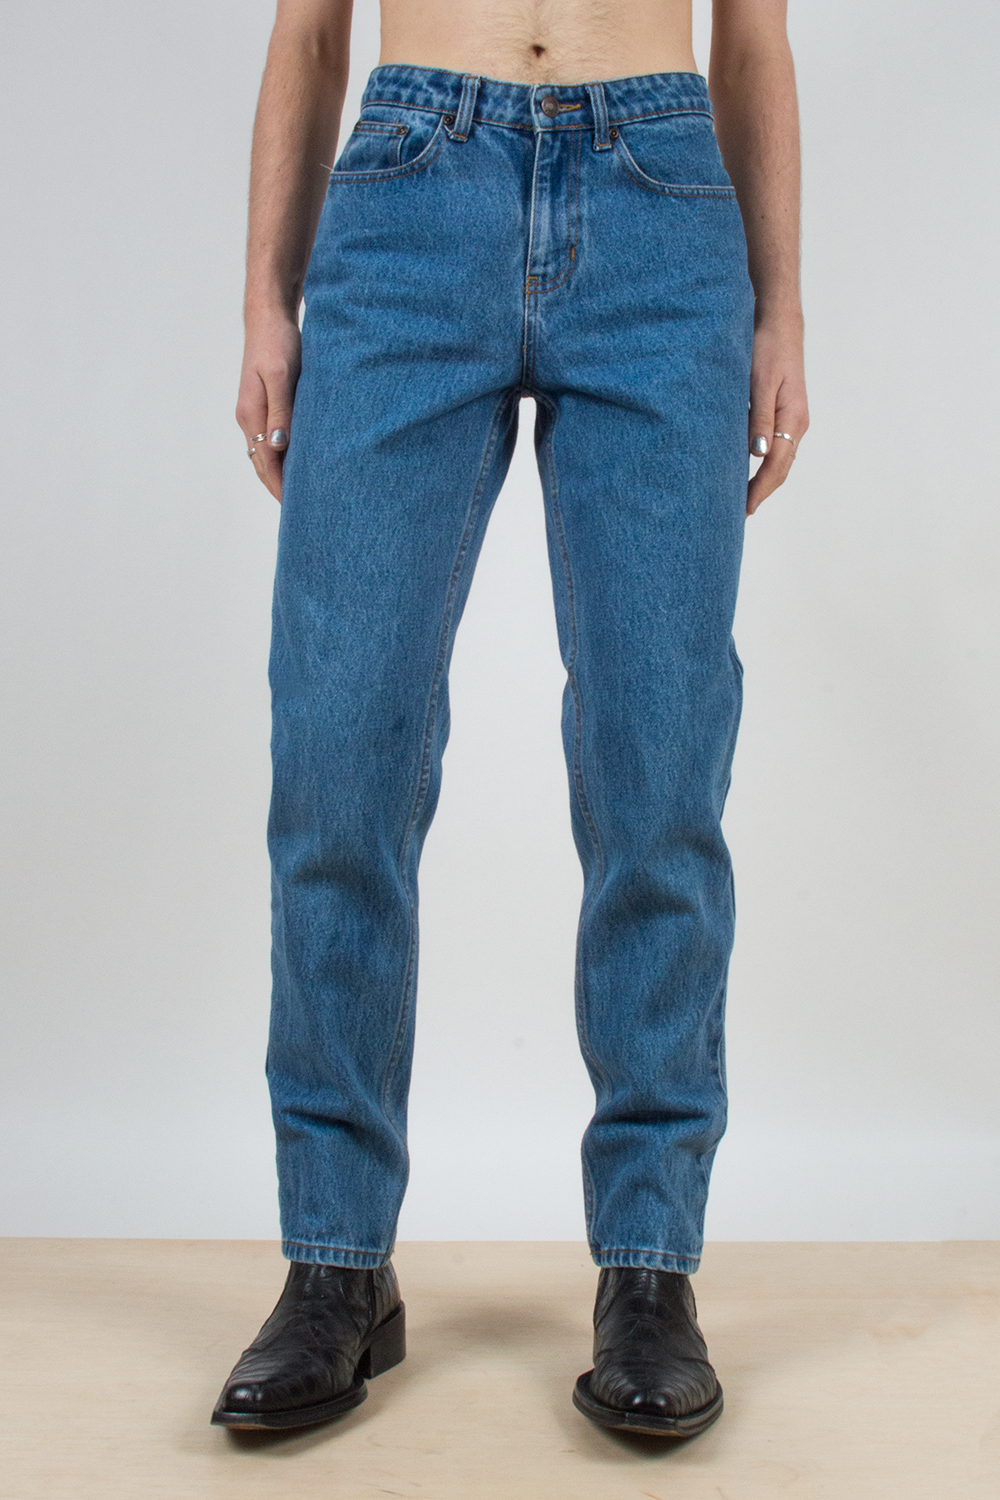 vintage blue jeans with slim-straight leg